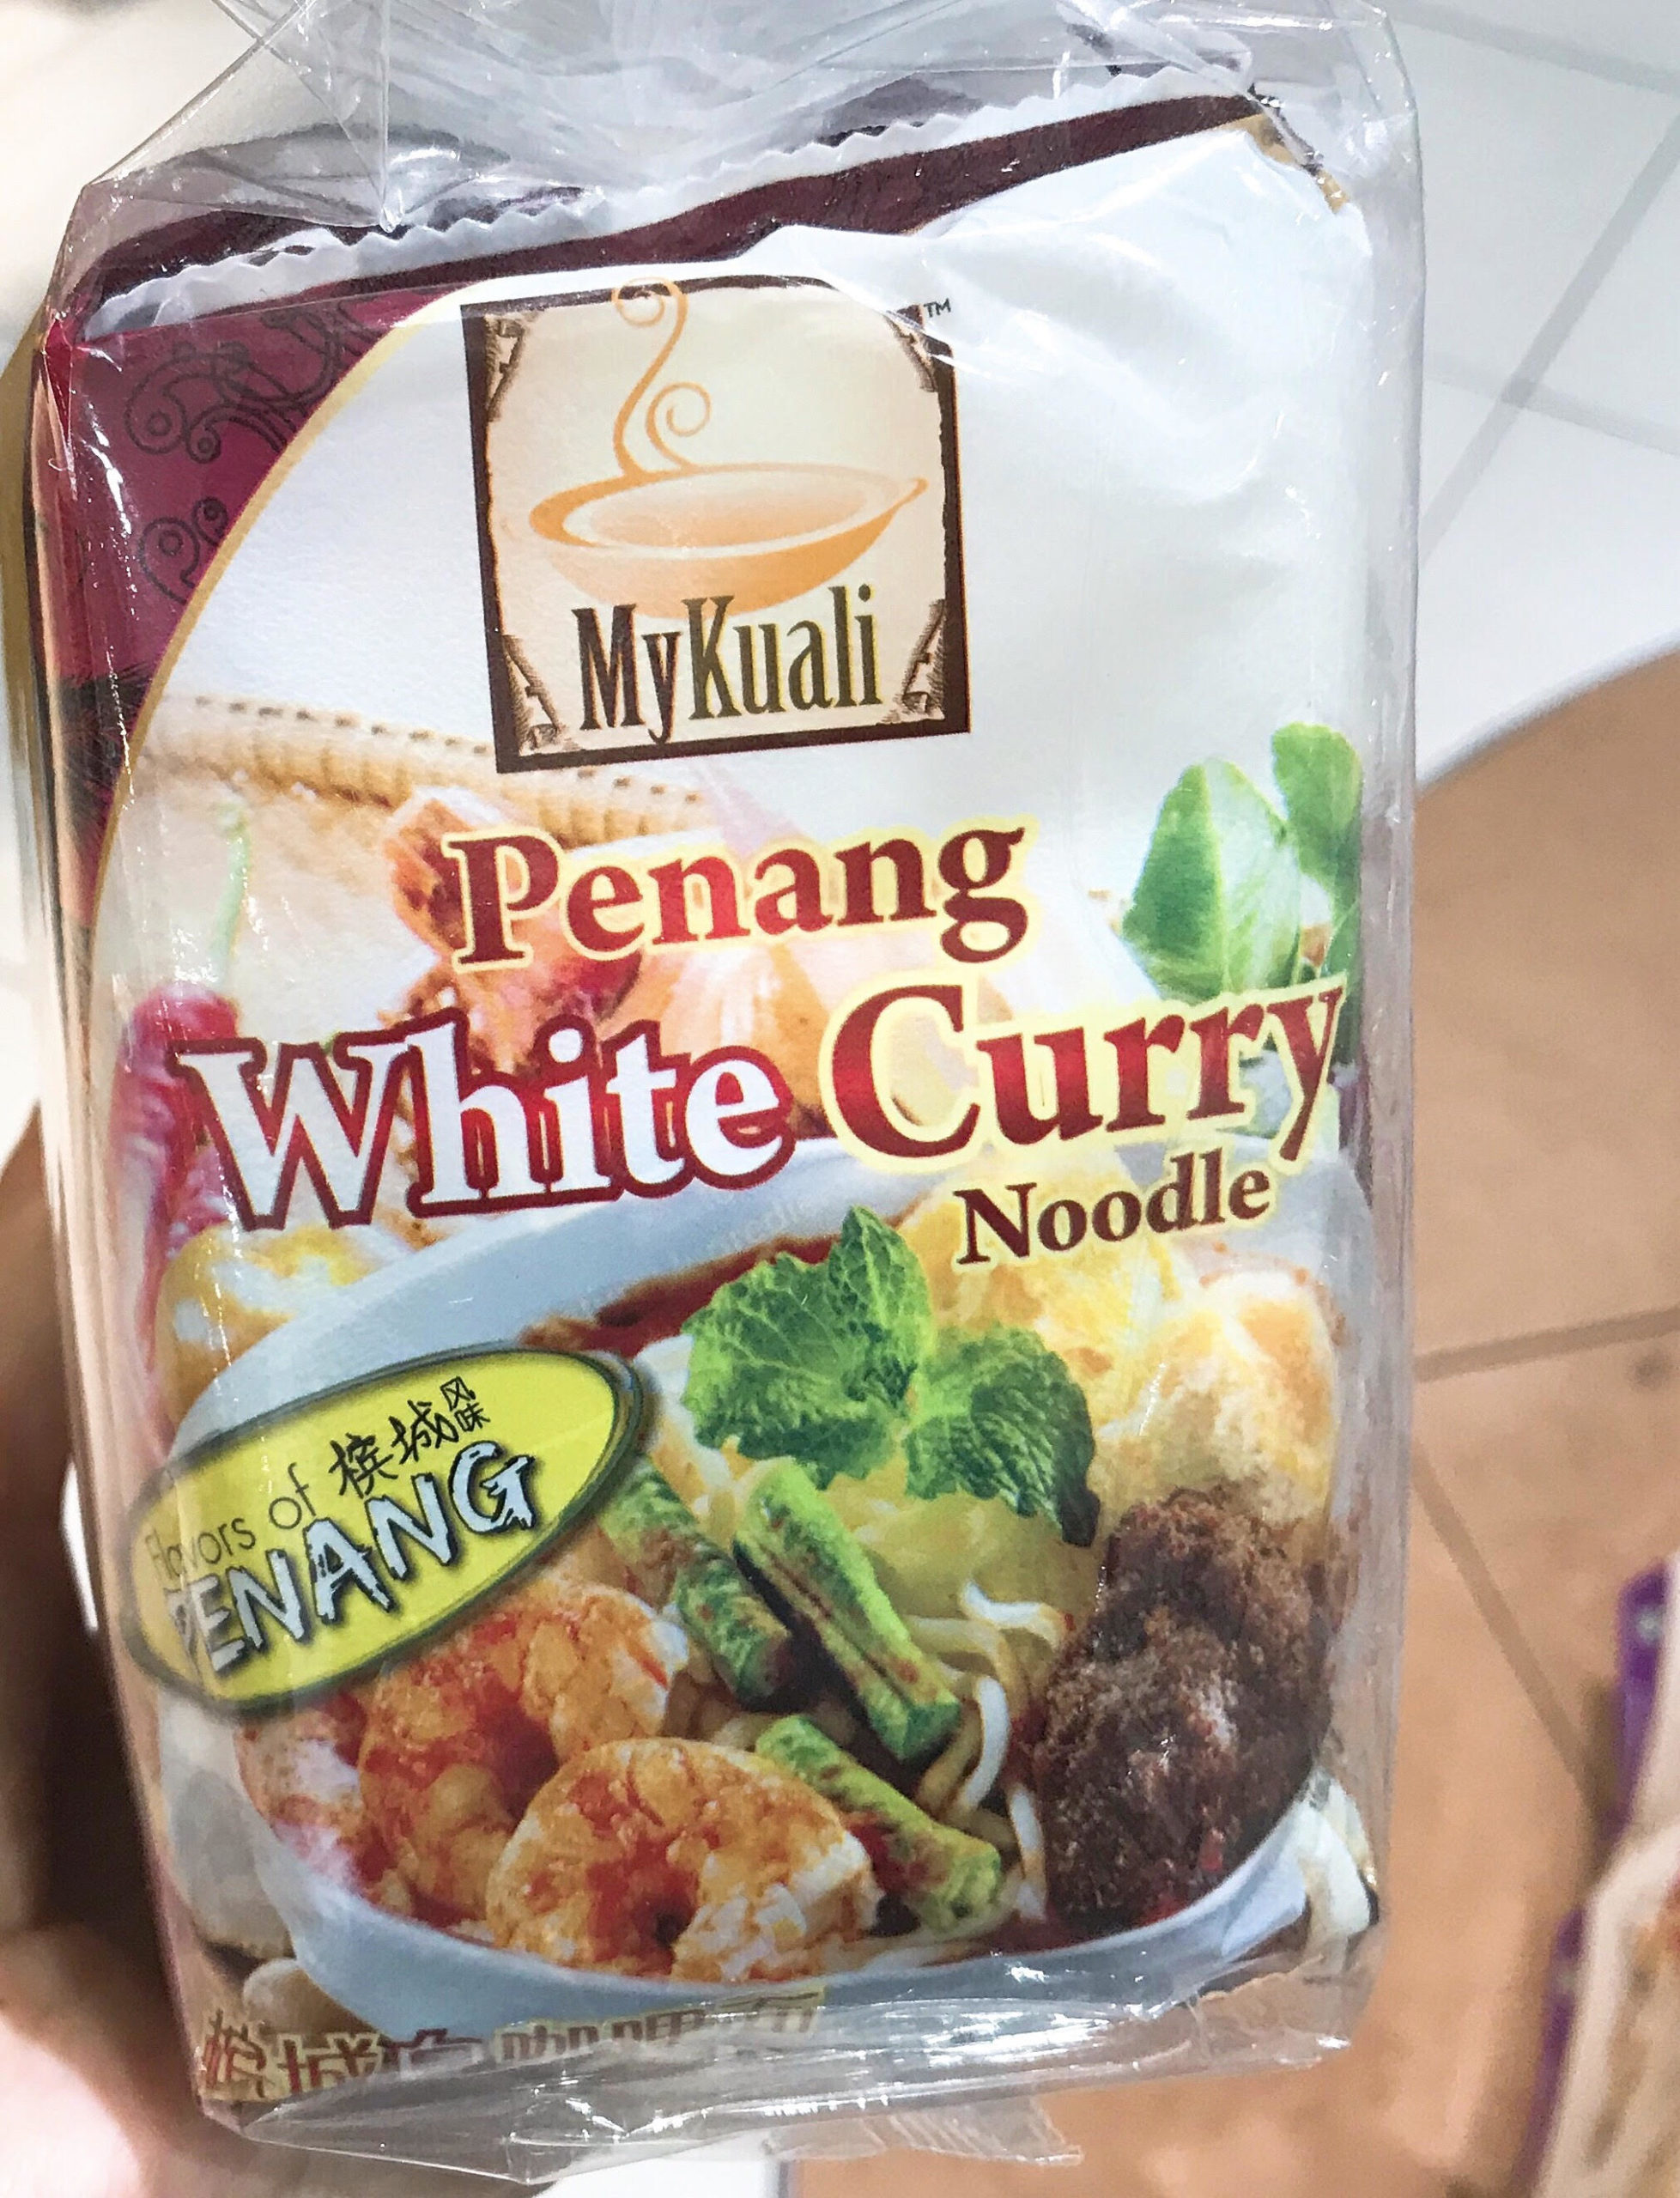 Penang White Curry Noogle